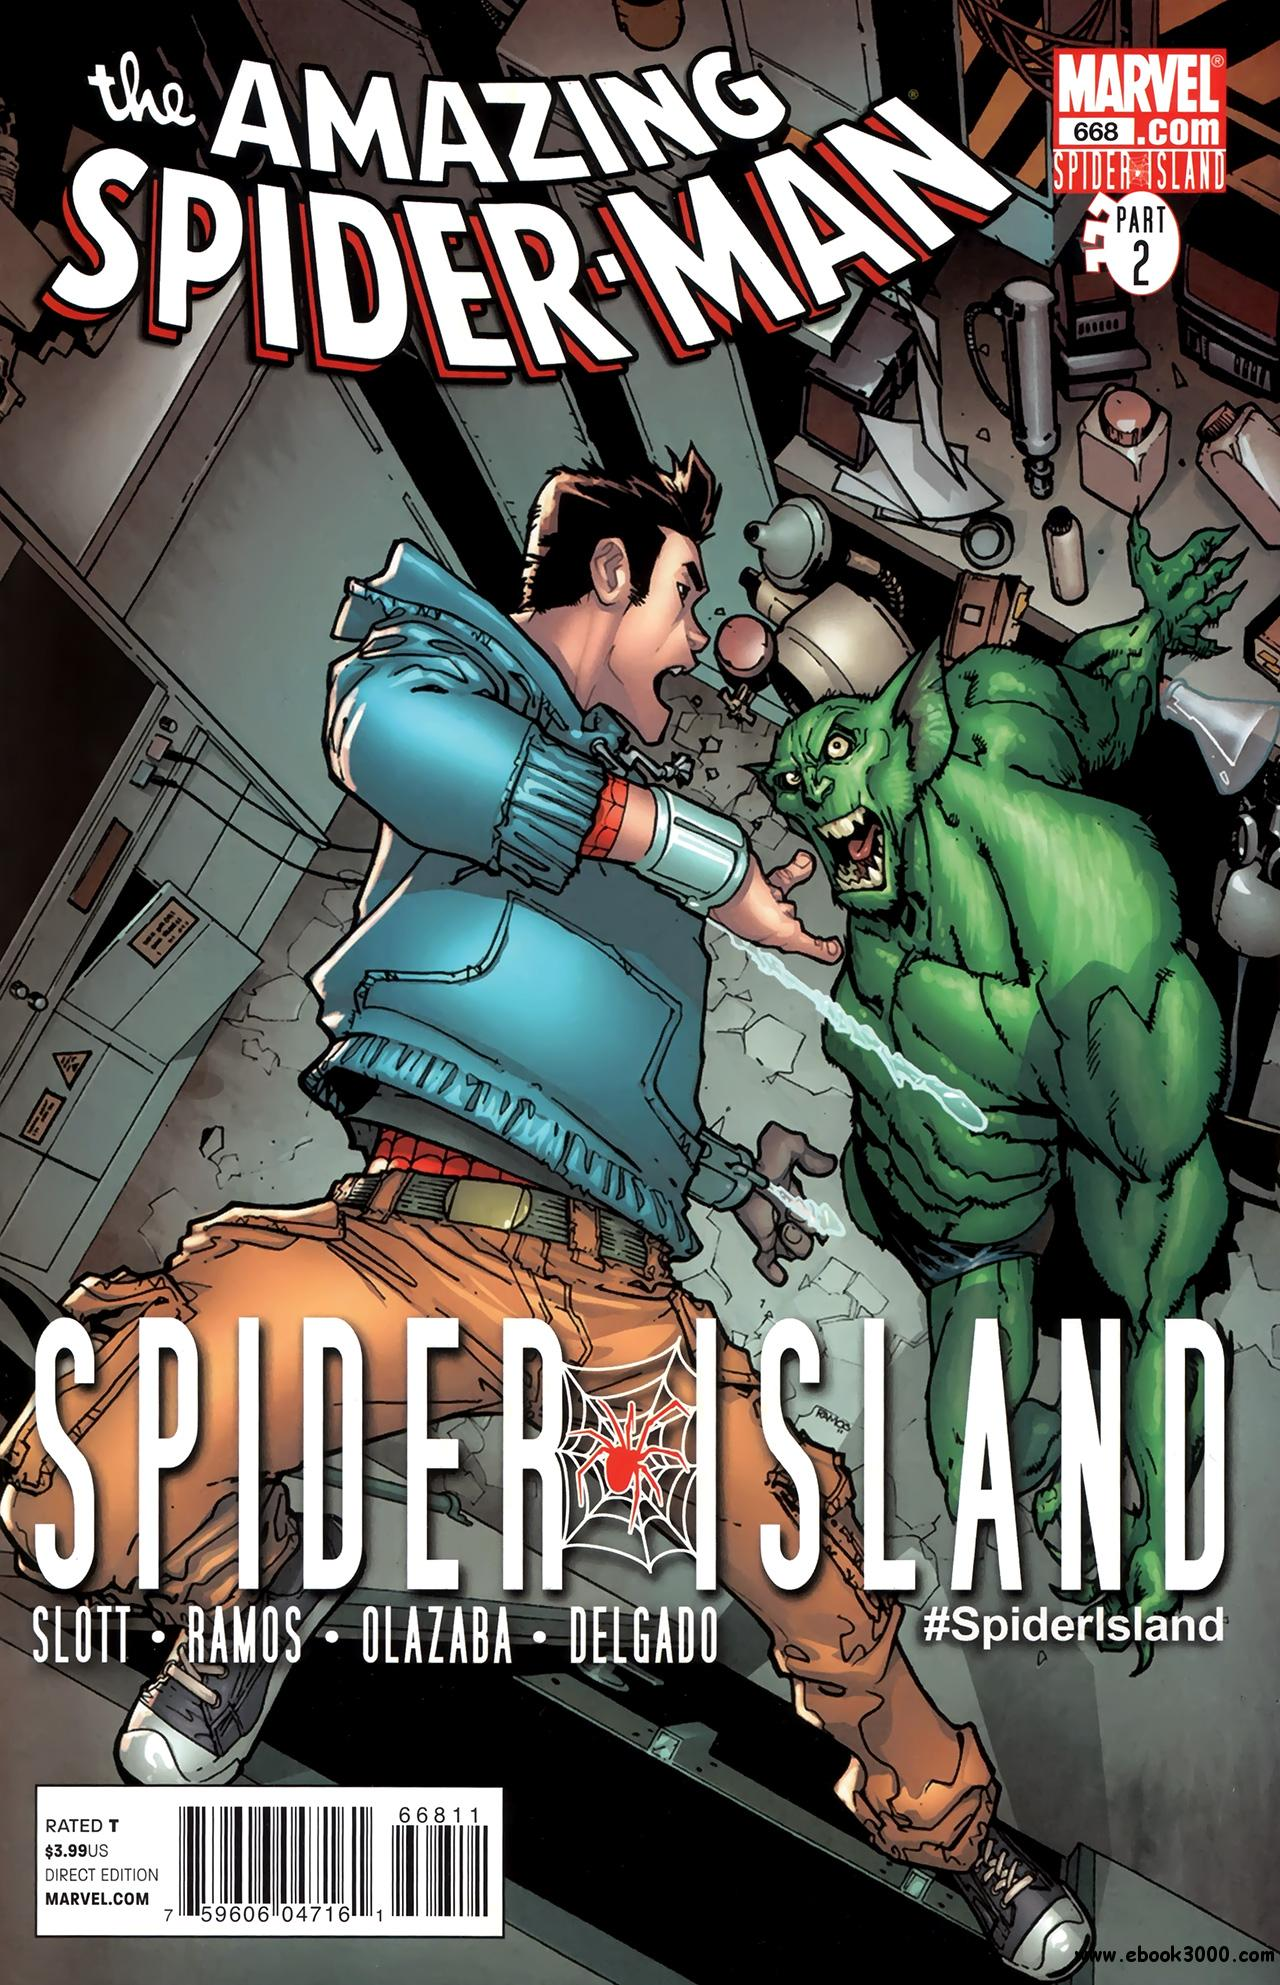 The Amazing Spider-Man #668 (2011) free download